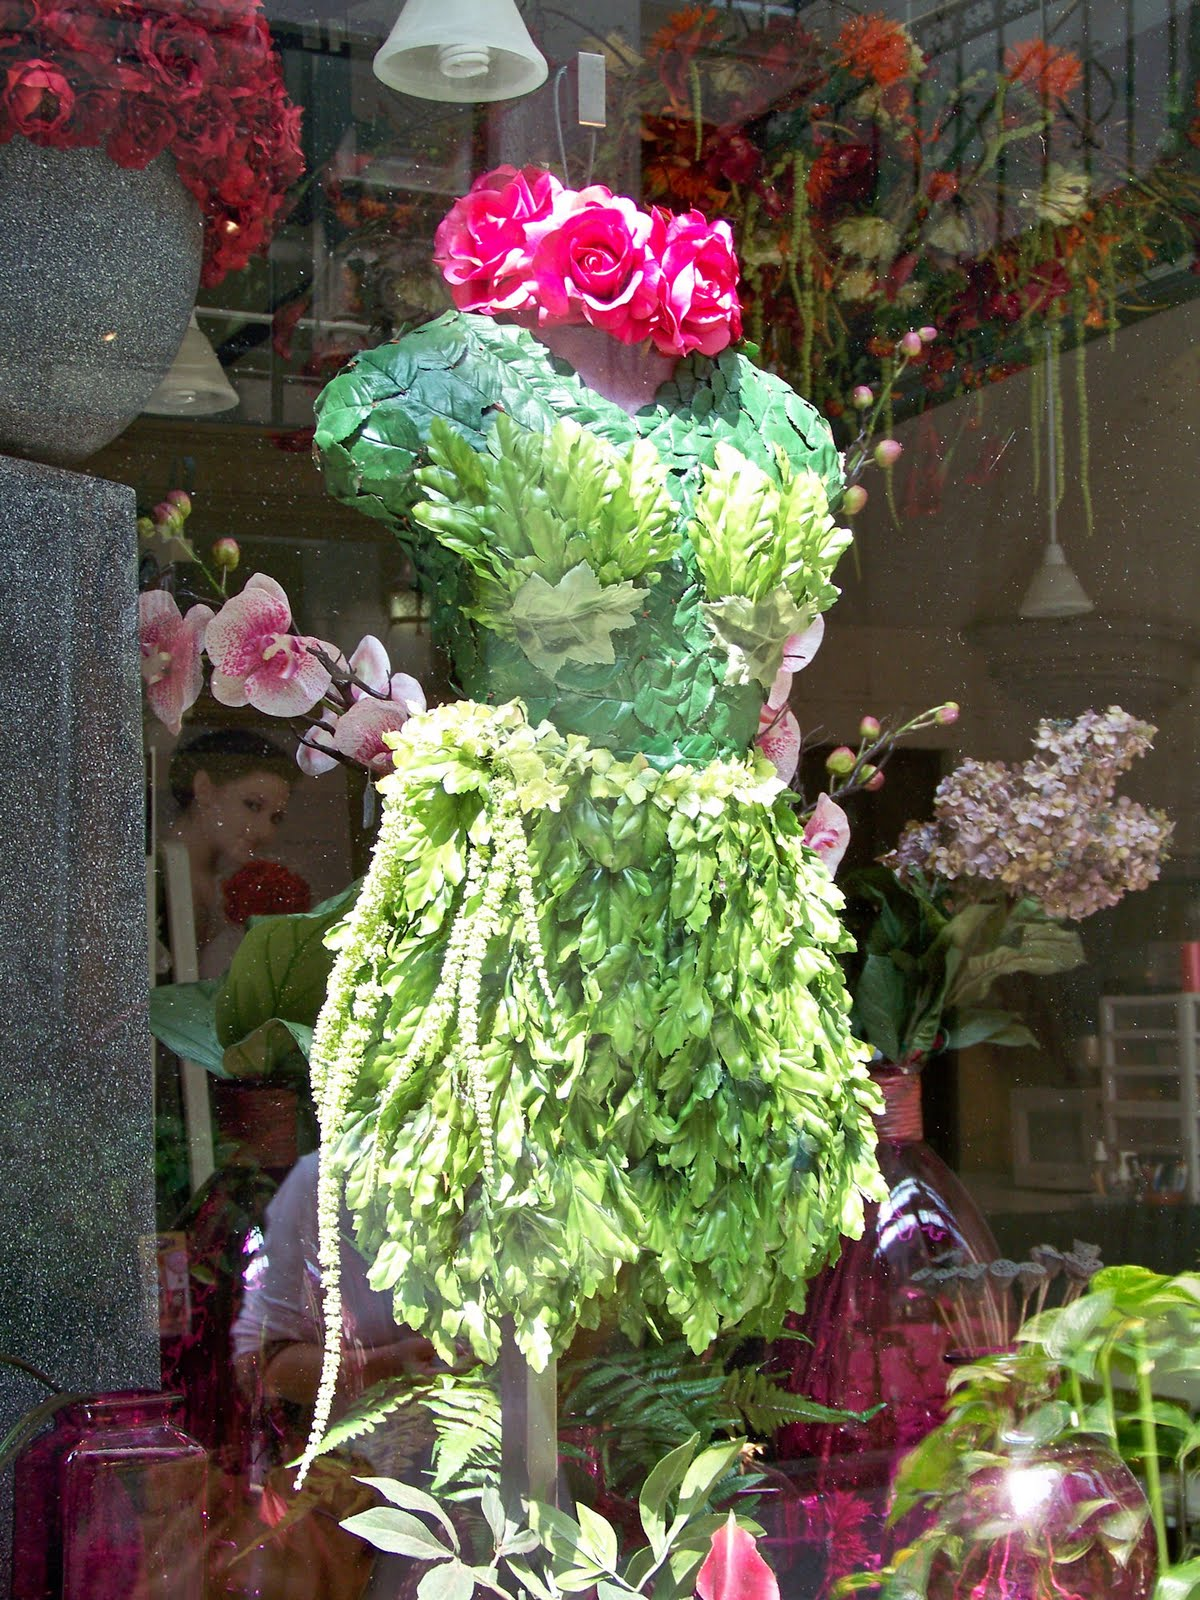 Korean Flower Art moreover Event Florist London Fashion Week likewise Asheville Shopping And Dining With Blog in addition Mothers Day Window Display Ispiration besides Designer Flowers. on florist window display